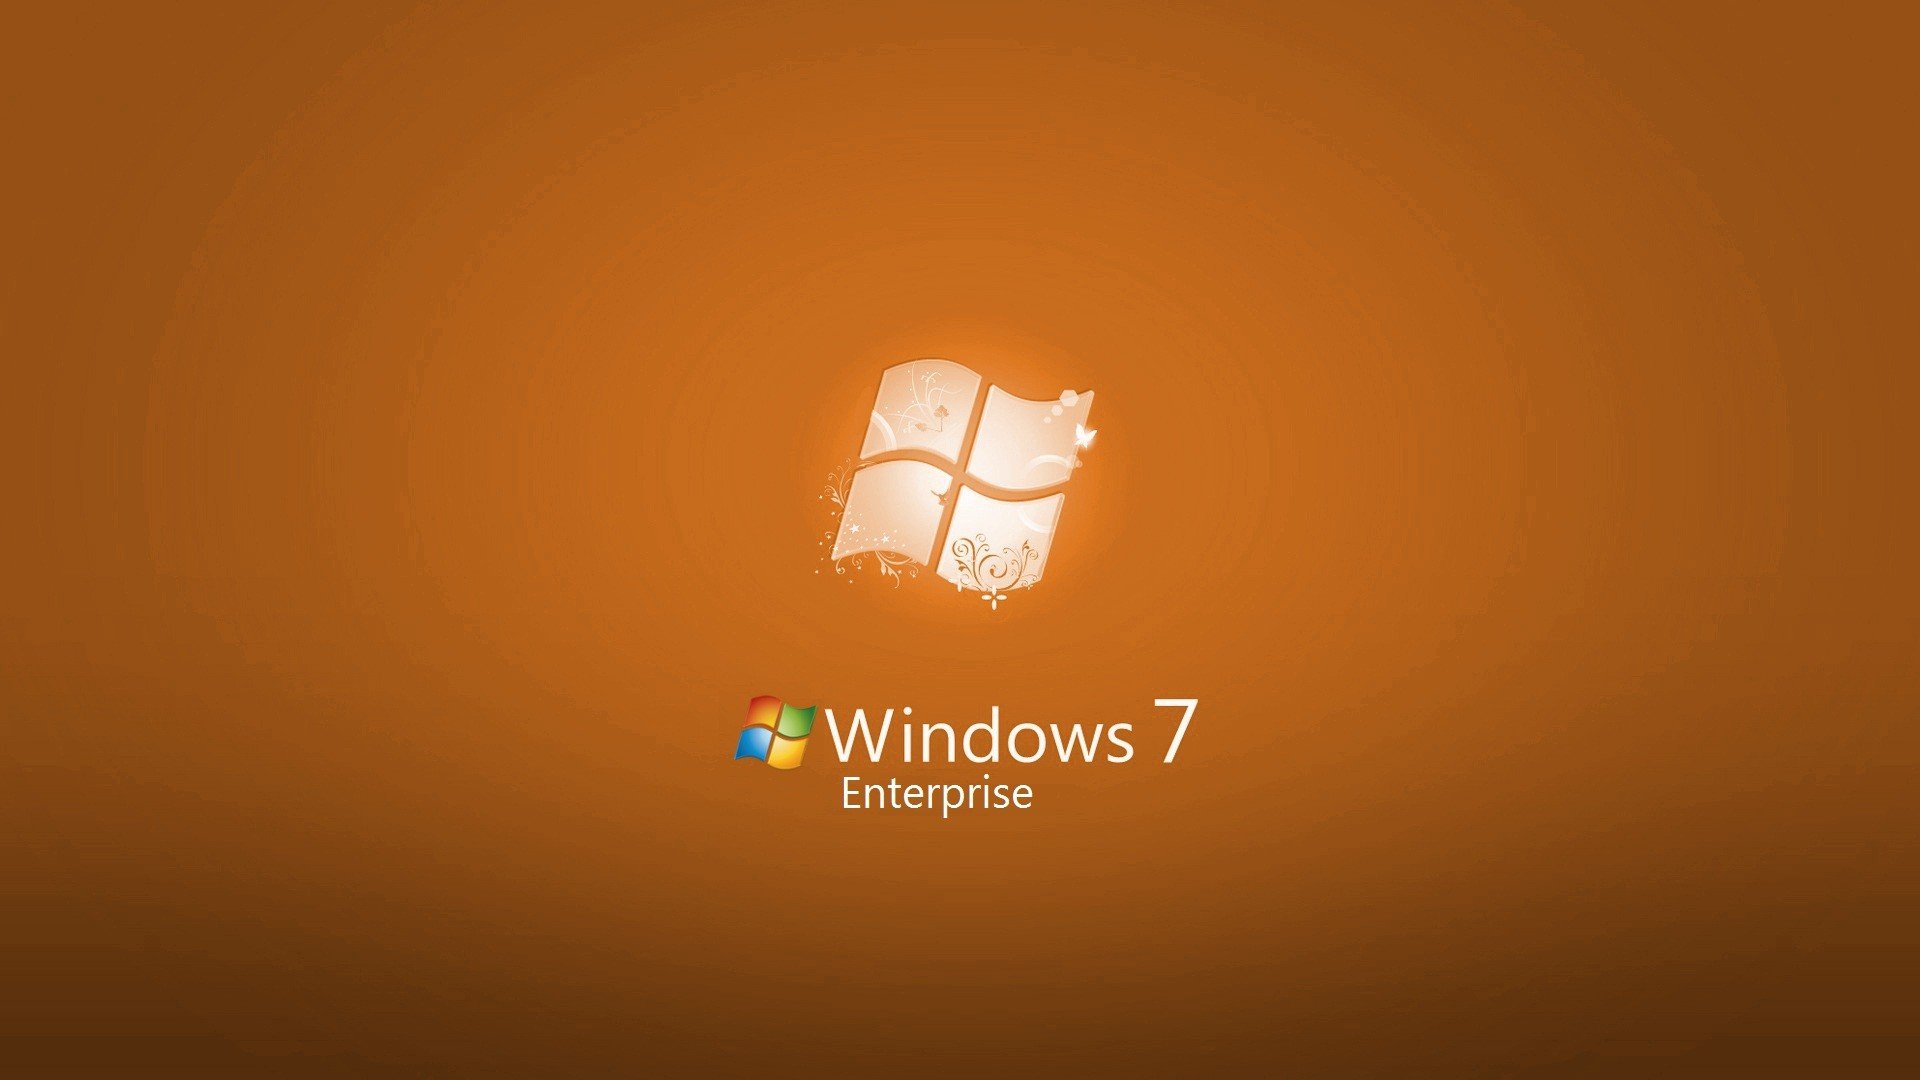 Windows 7 Wallpapers 1366x768 83 Background Pictures